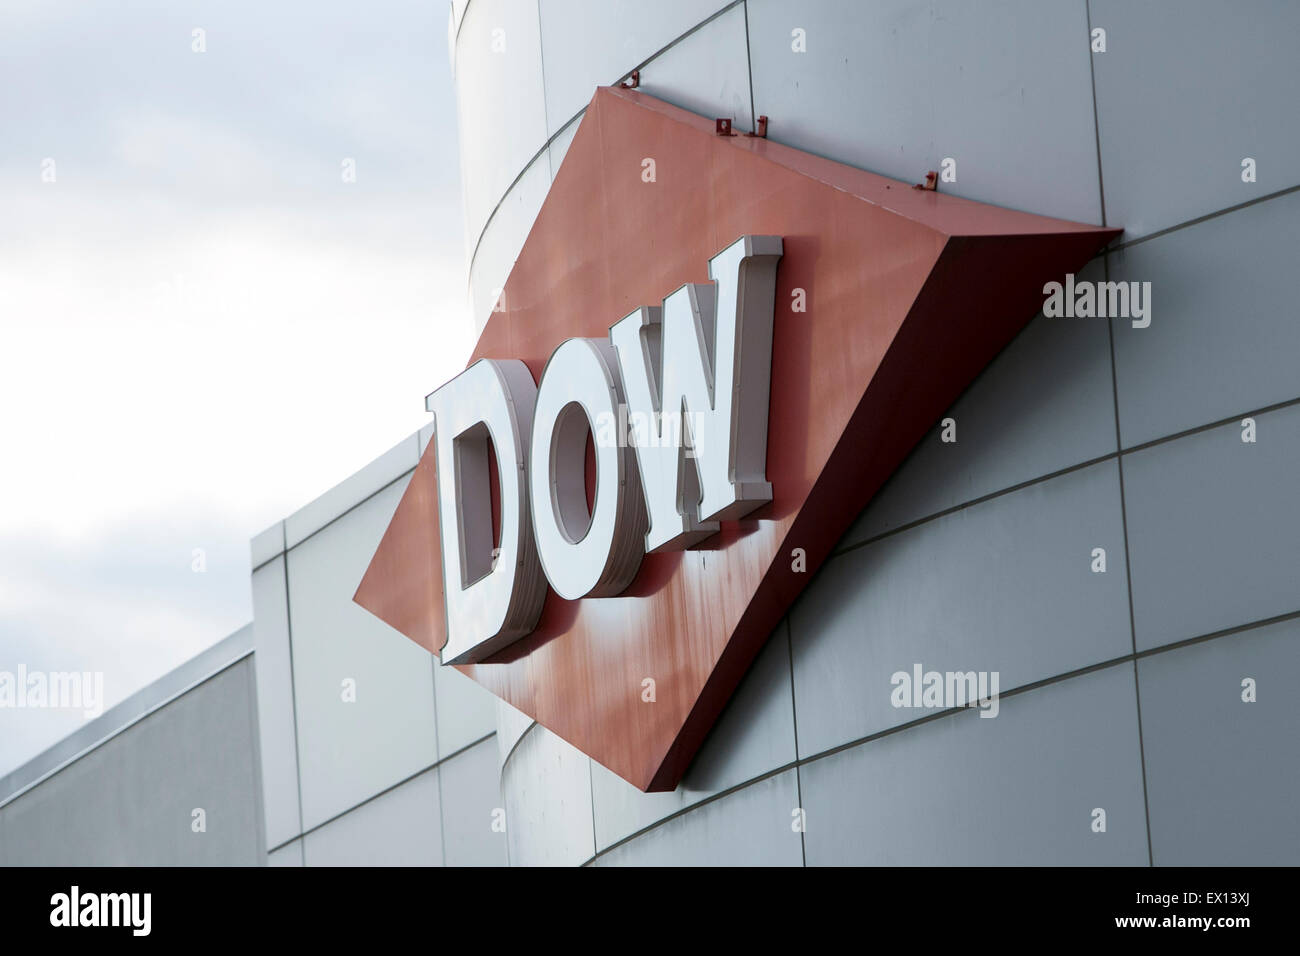 Dow Chemical Stock Photos Dow Chemical Stock Images Alamy